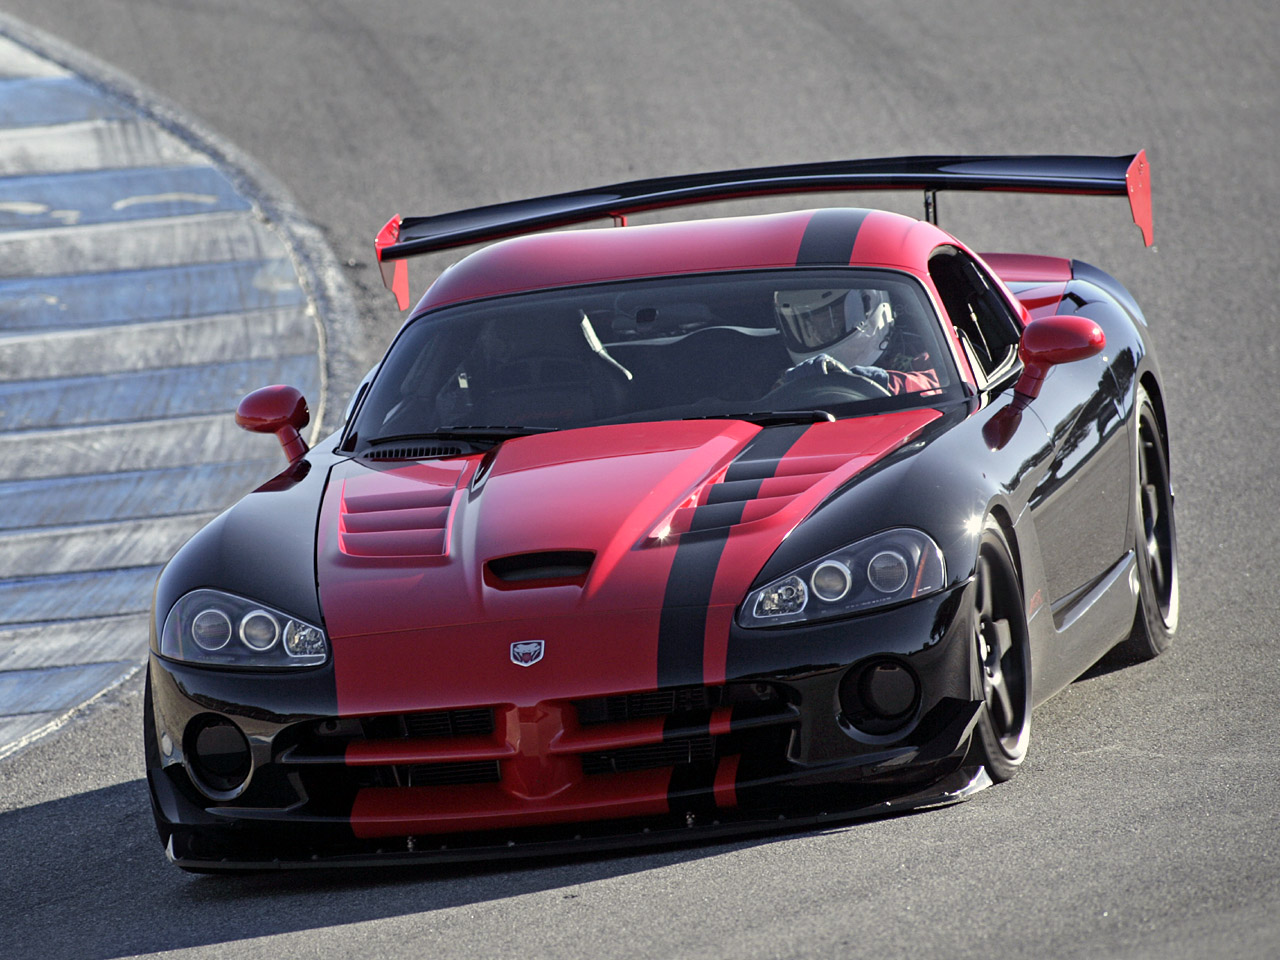 2010 dodge viper srt10 acr pictures specifications and. Black Bedroom Furniture Sets. Home Design Ideas